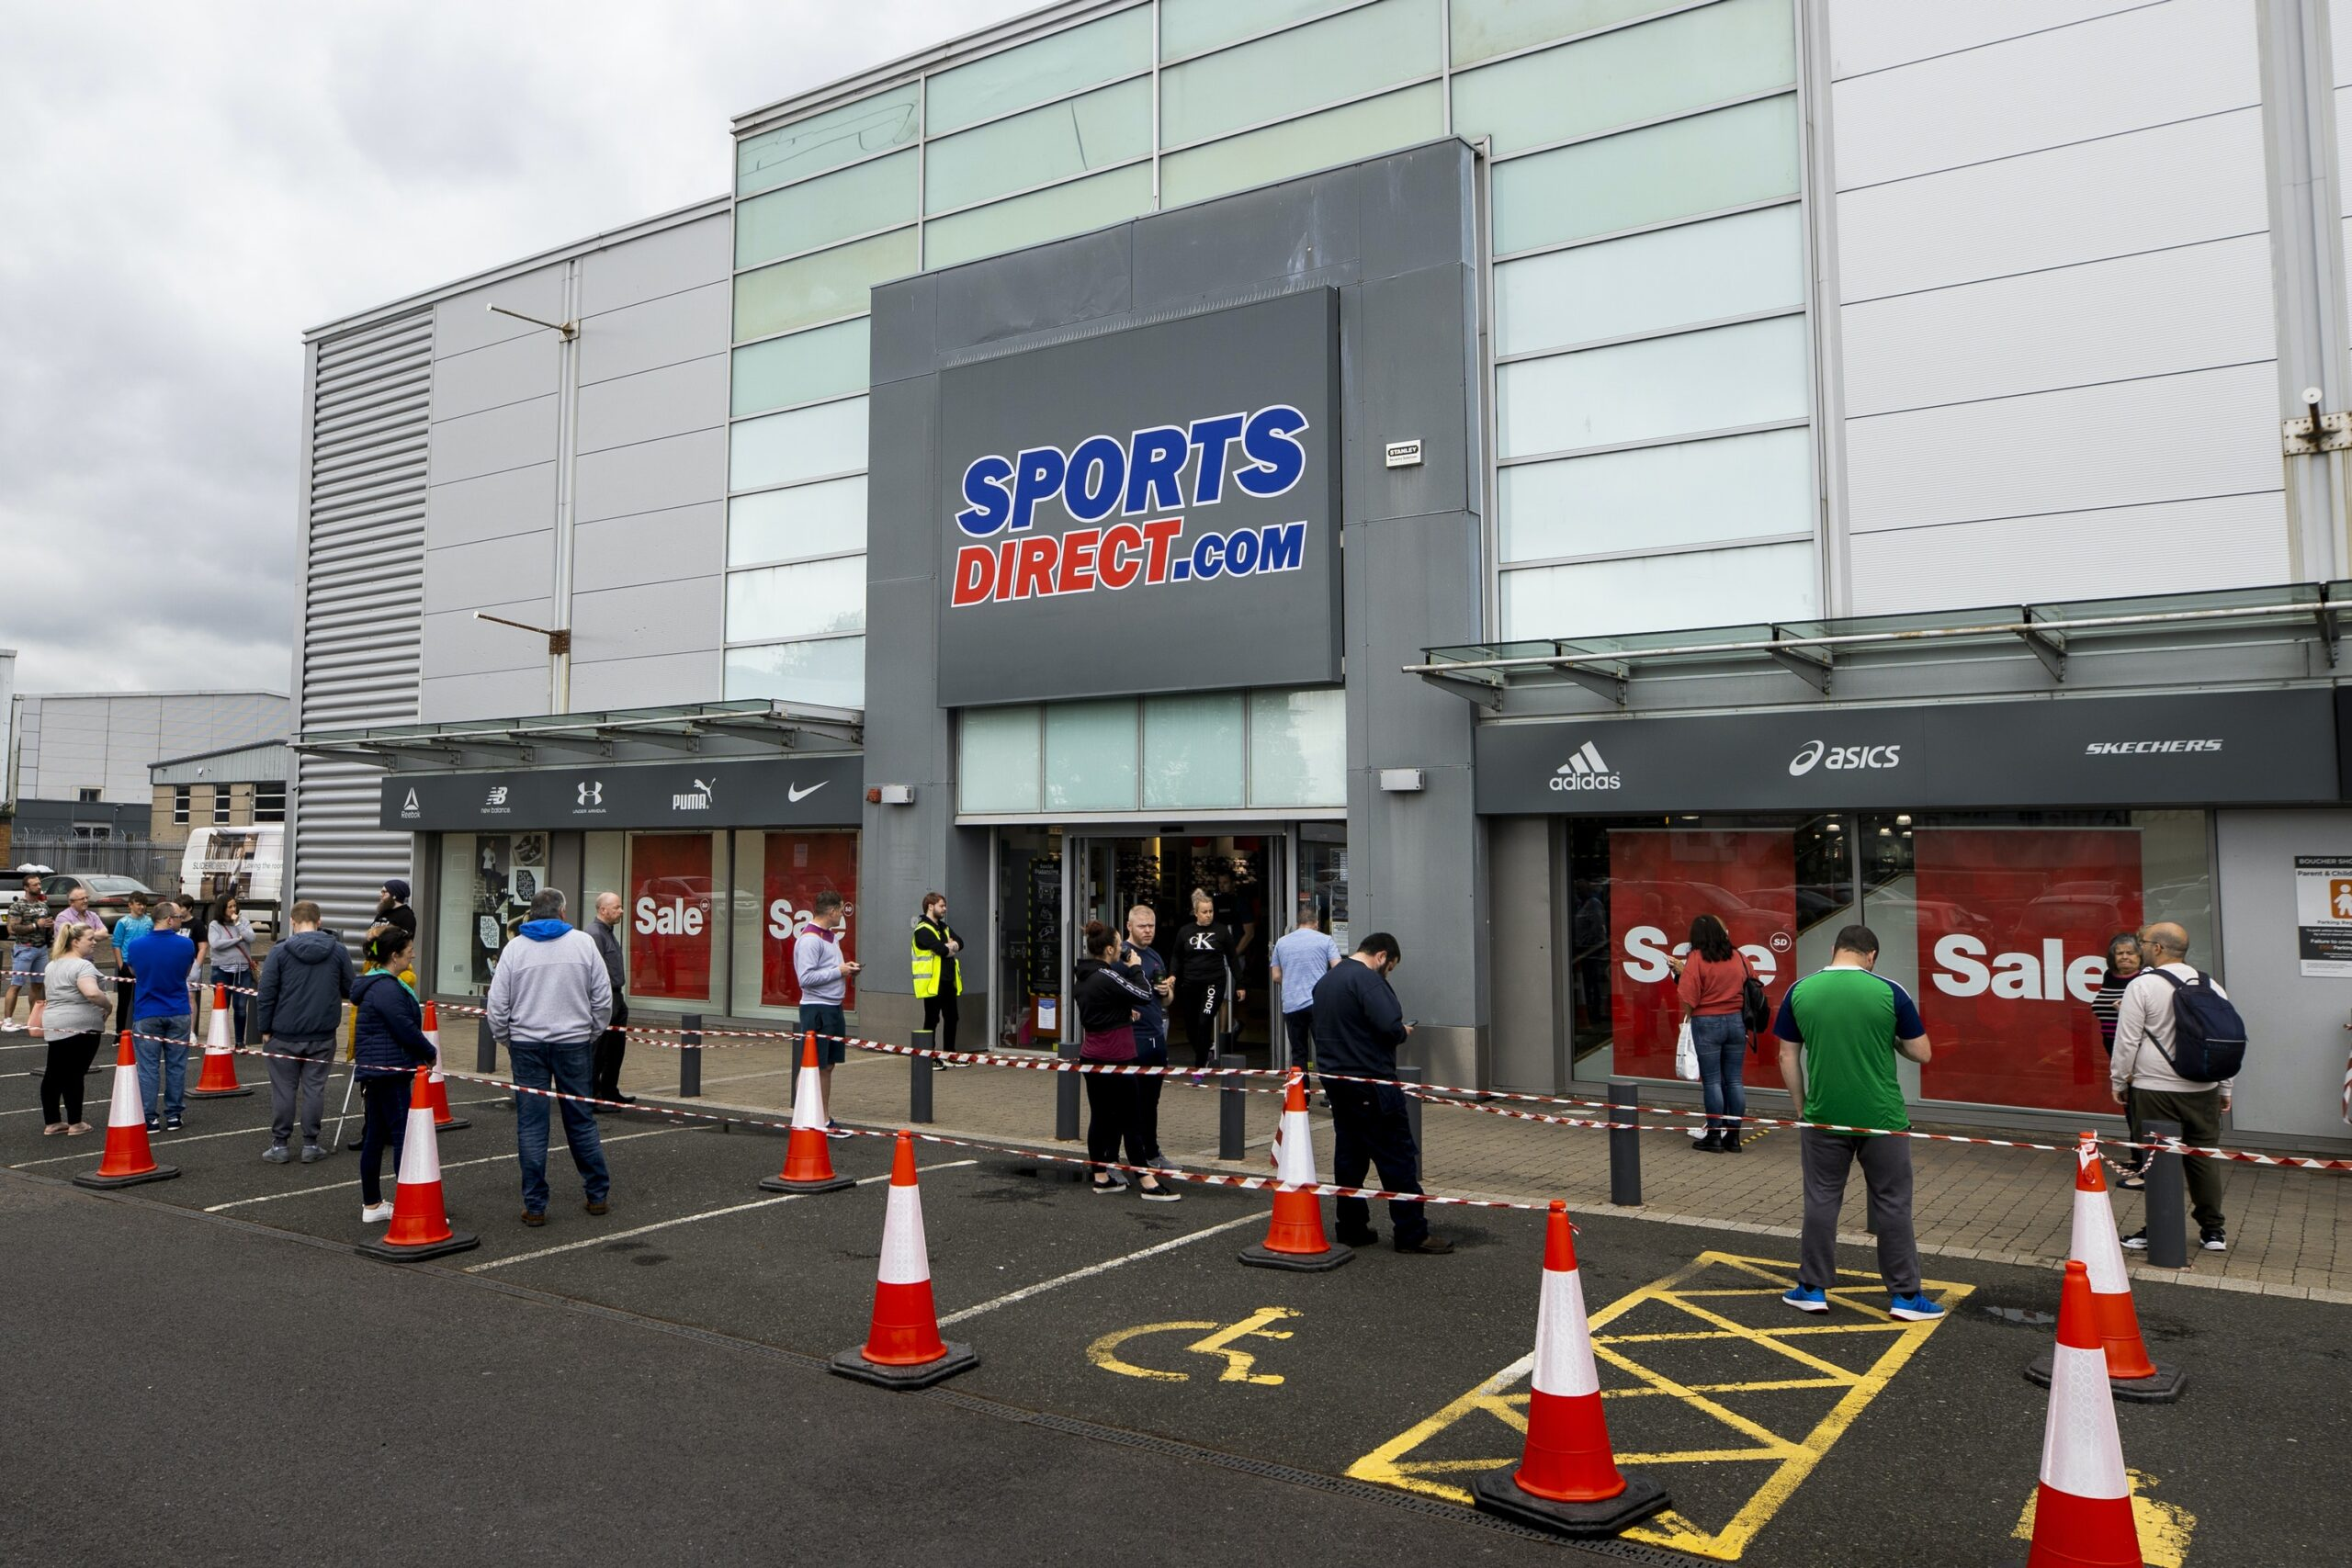 Frasers Group Sports Direct